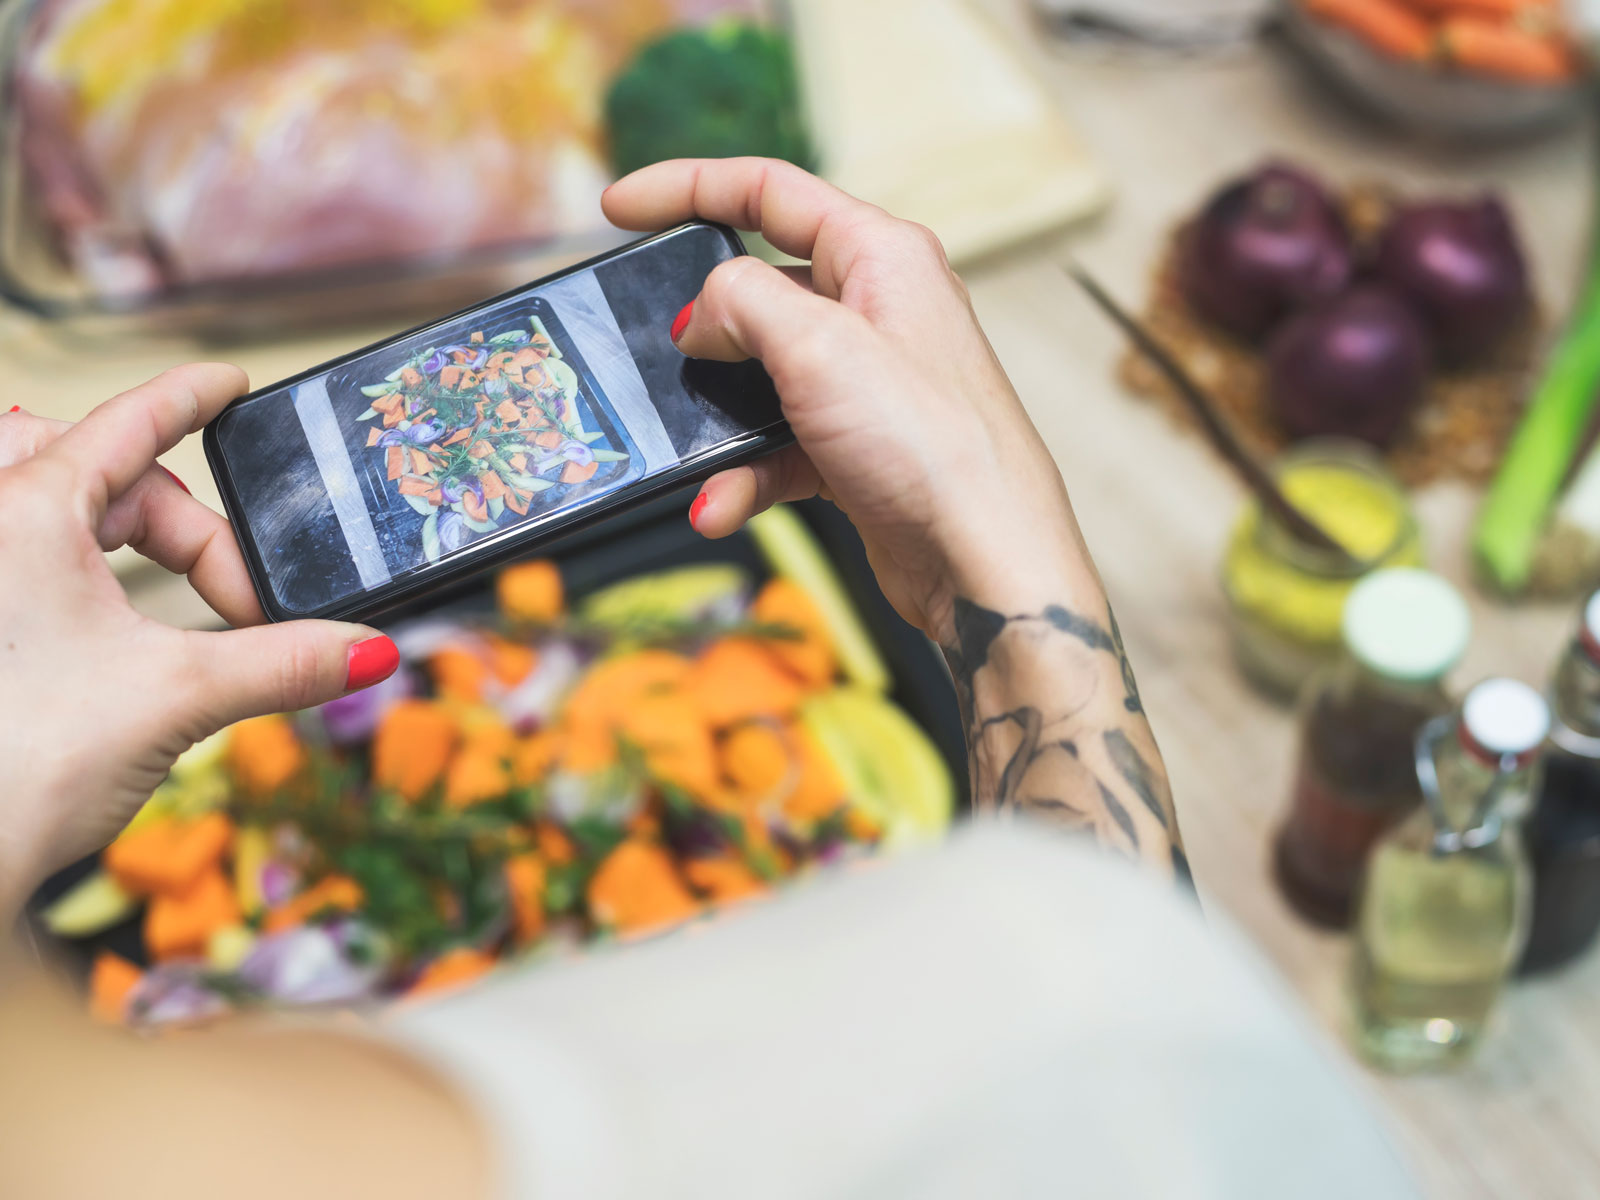 How to Become a Food Vlogger